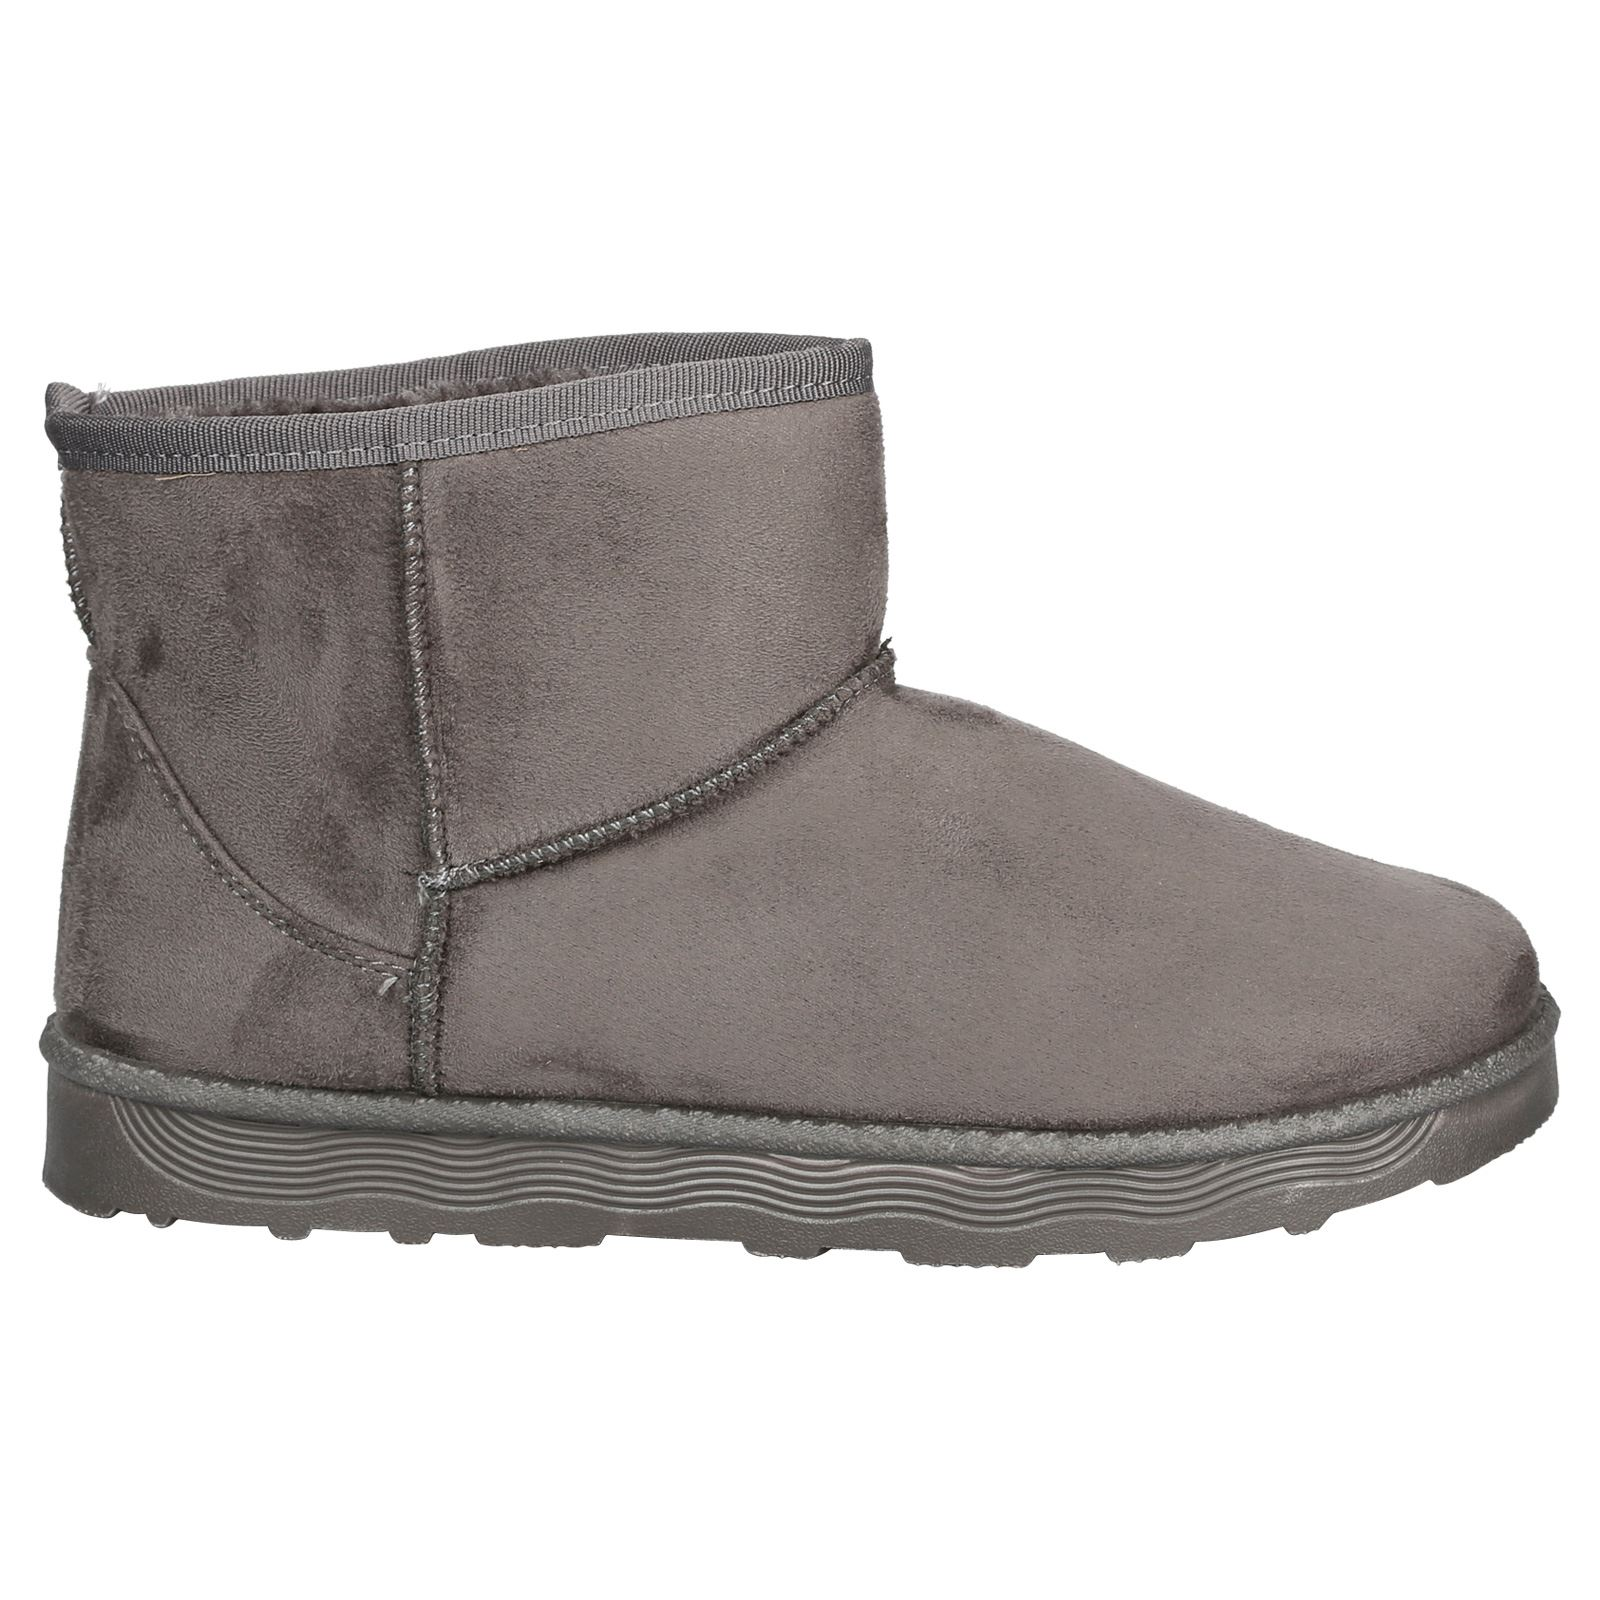 Naomi-Womens-Platfrom-Flat-Fur-Lined-Pull-On-Snug-Snow-Boots-Casual-Ladies-Size thumbnail 11